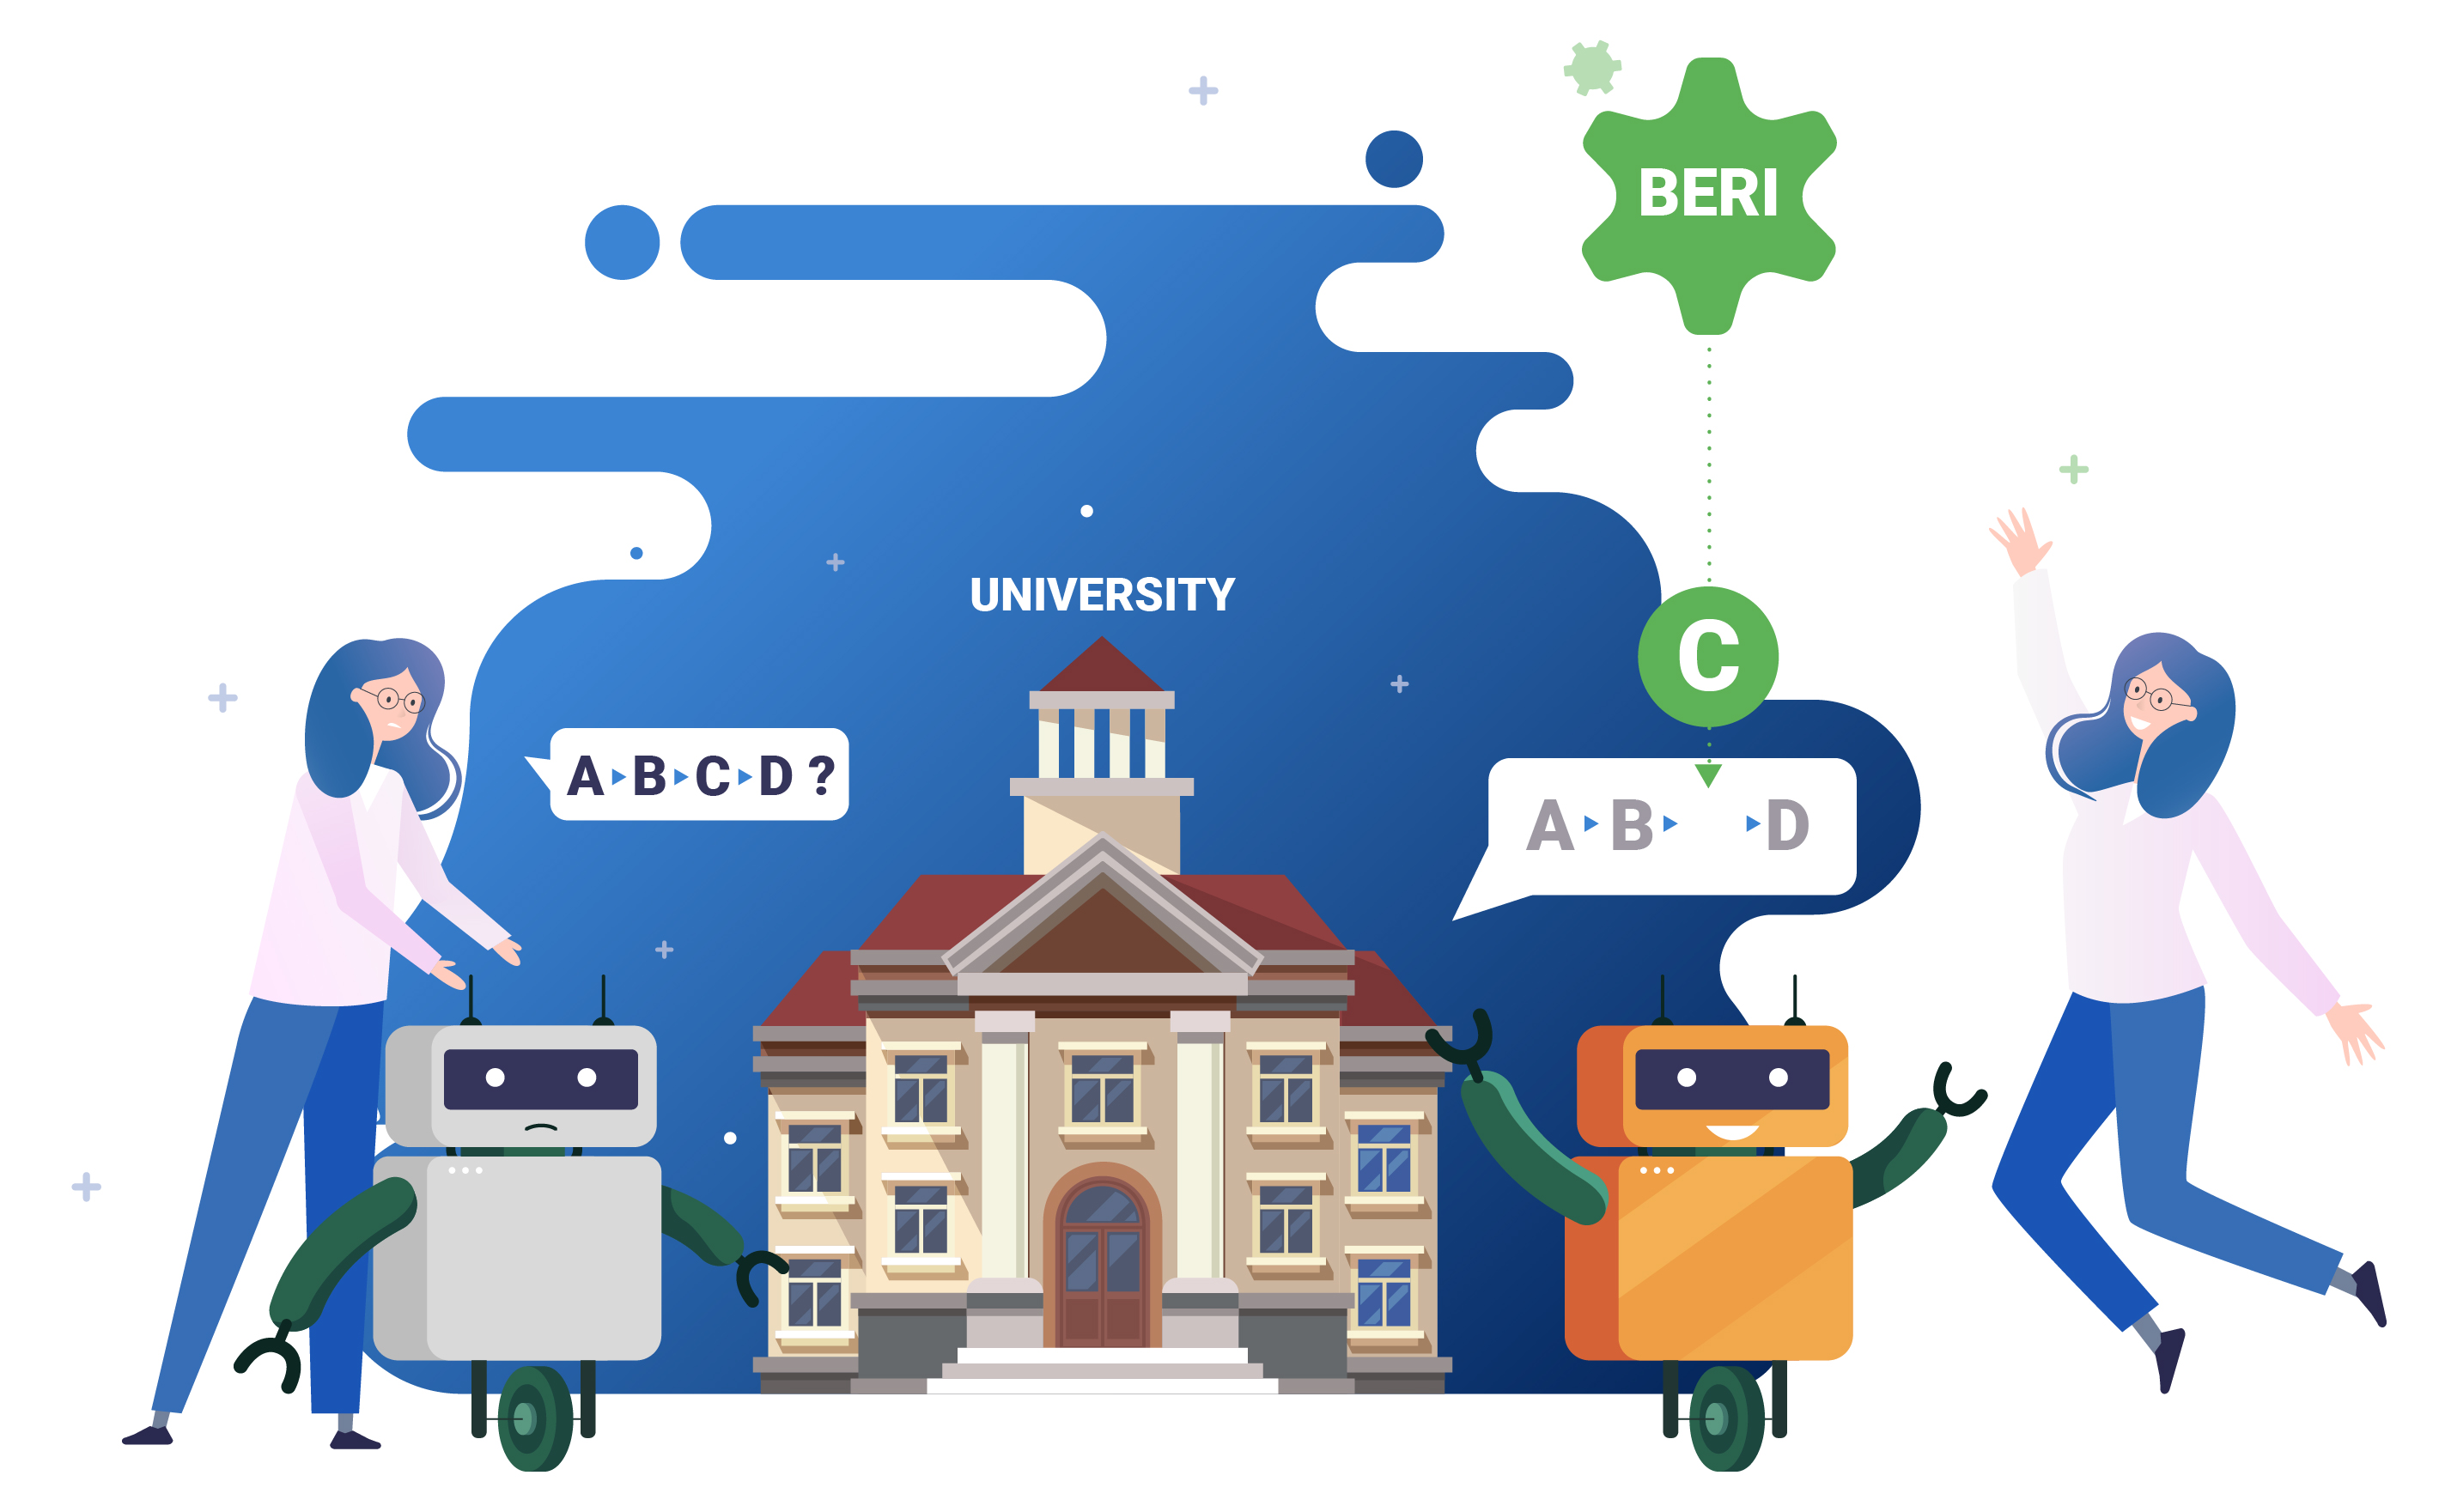 BERI teams up with universities to make researchers' plans happen!